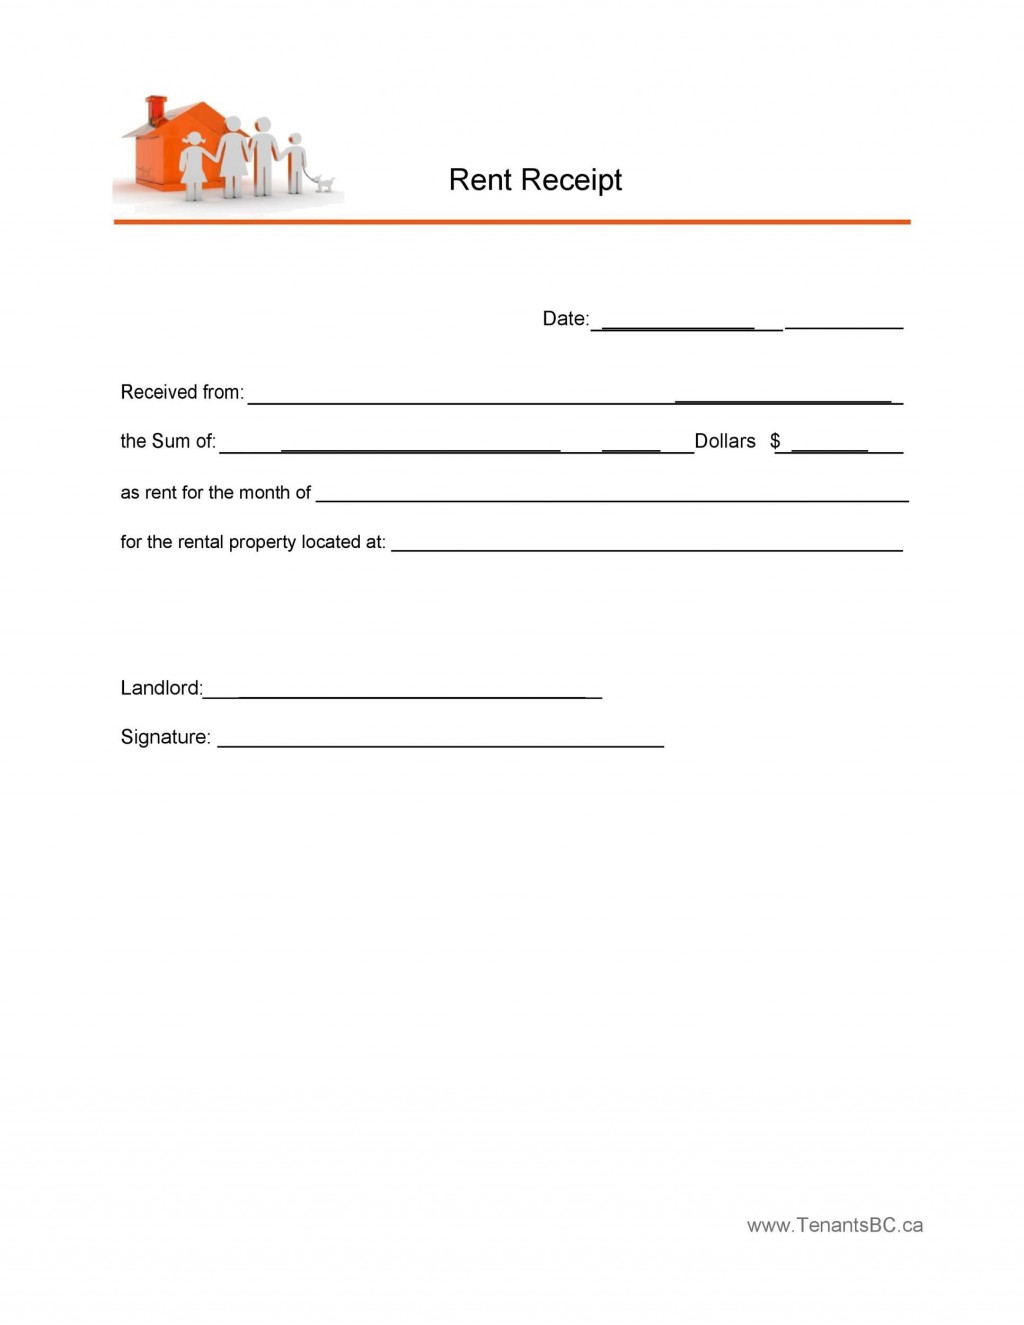 008 Surprising House Rent Receipt Sample Doc Highest Clarity  Template Word Document Free Download Format For Income TaxLarge